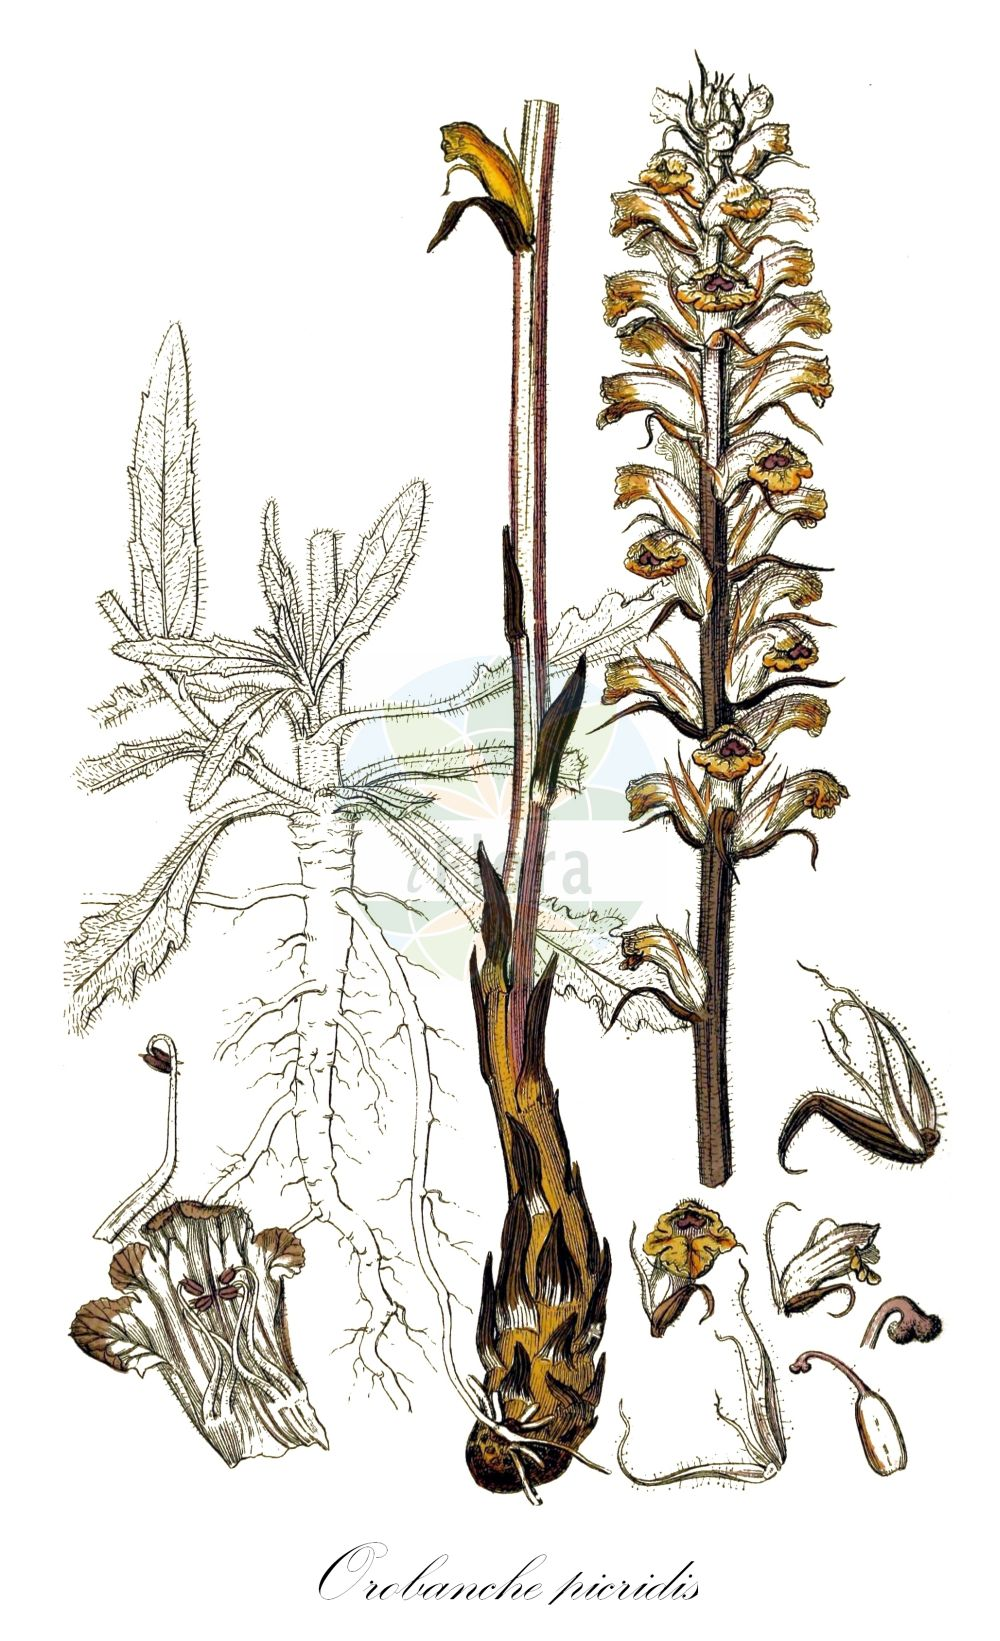 Historische Abbildung von Orobanche picridis (Panzer-Sommerwurz - Oxtongue Broomrape). Das Bild zeigt Blatt, Bluete, Frucht und Same. ---- Historical Drawing of Orobanche picridis (Panzer-Sommerwurz - Oxtongue Broomrape).The image is showing leaf, flower, fruit and seed.(Orobanche picridis,Panzer-Sommerwurz,Oxtongue Broomrape,Picris Broomrape,Orobanche,Sommerwurz,Broomrape,Orobanchaceae,Sommerwurzgewaechse,Broomrape family,Blatt,Bluete,Frucht,Same,leaf,flower,fruit,seed,Sowerby (1790-1813))